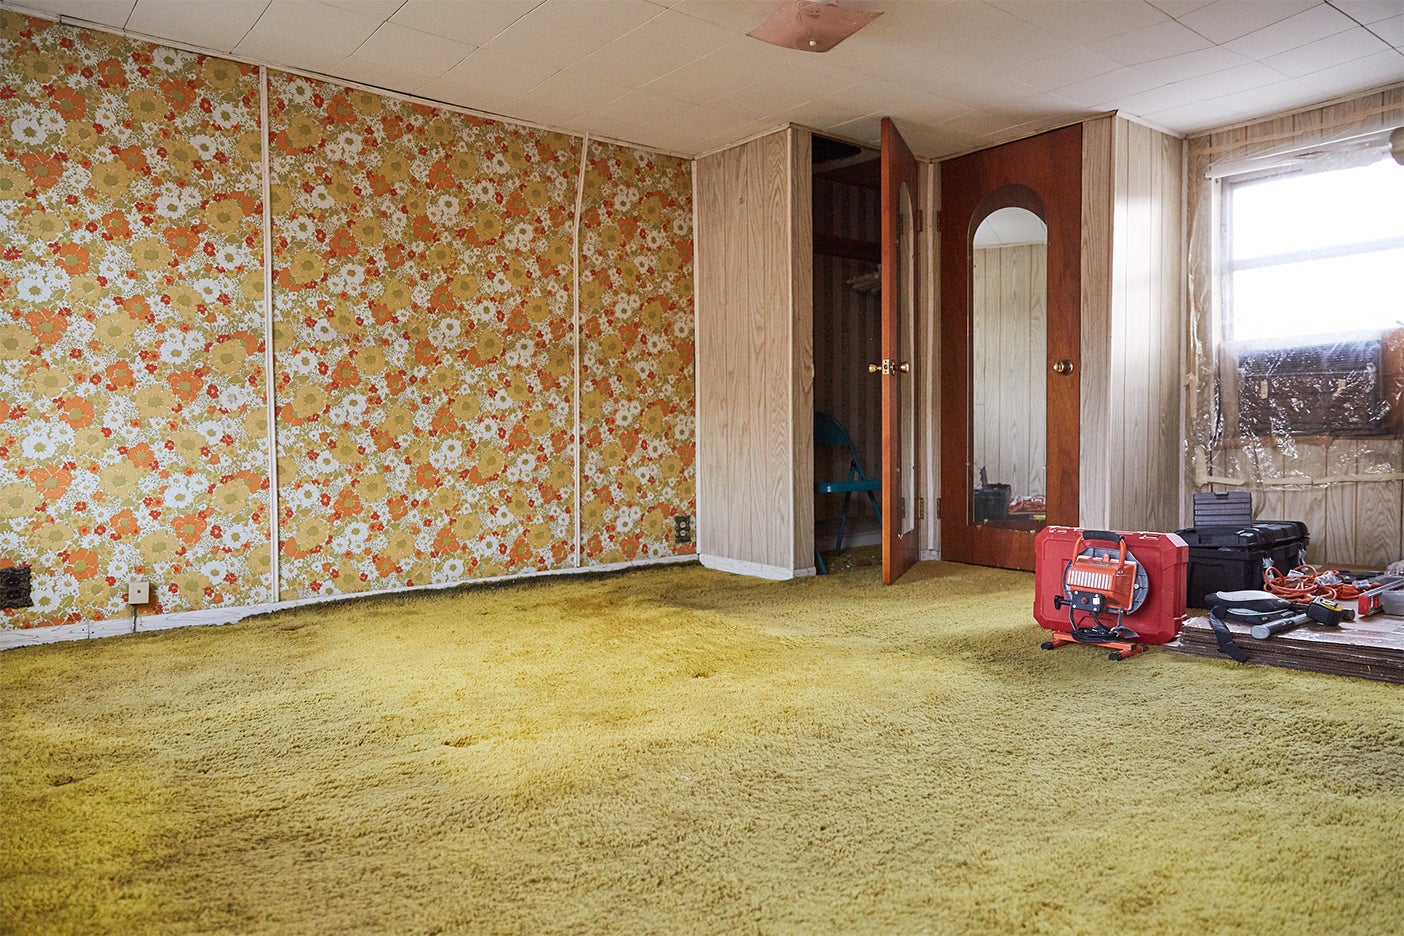 dated bedroom with yellow carpet